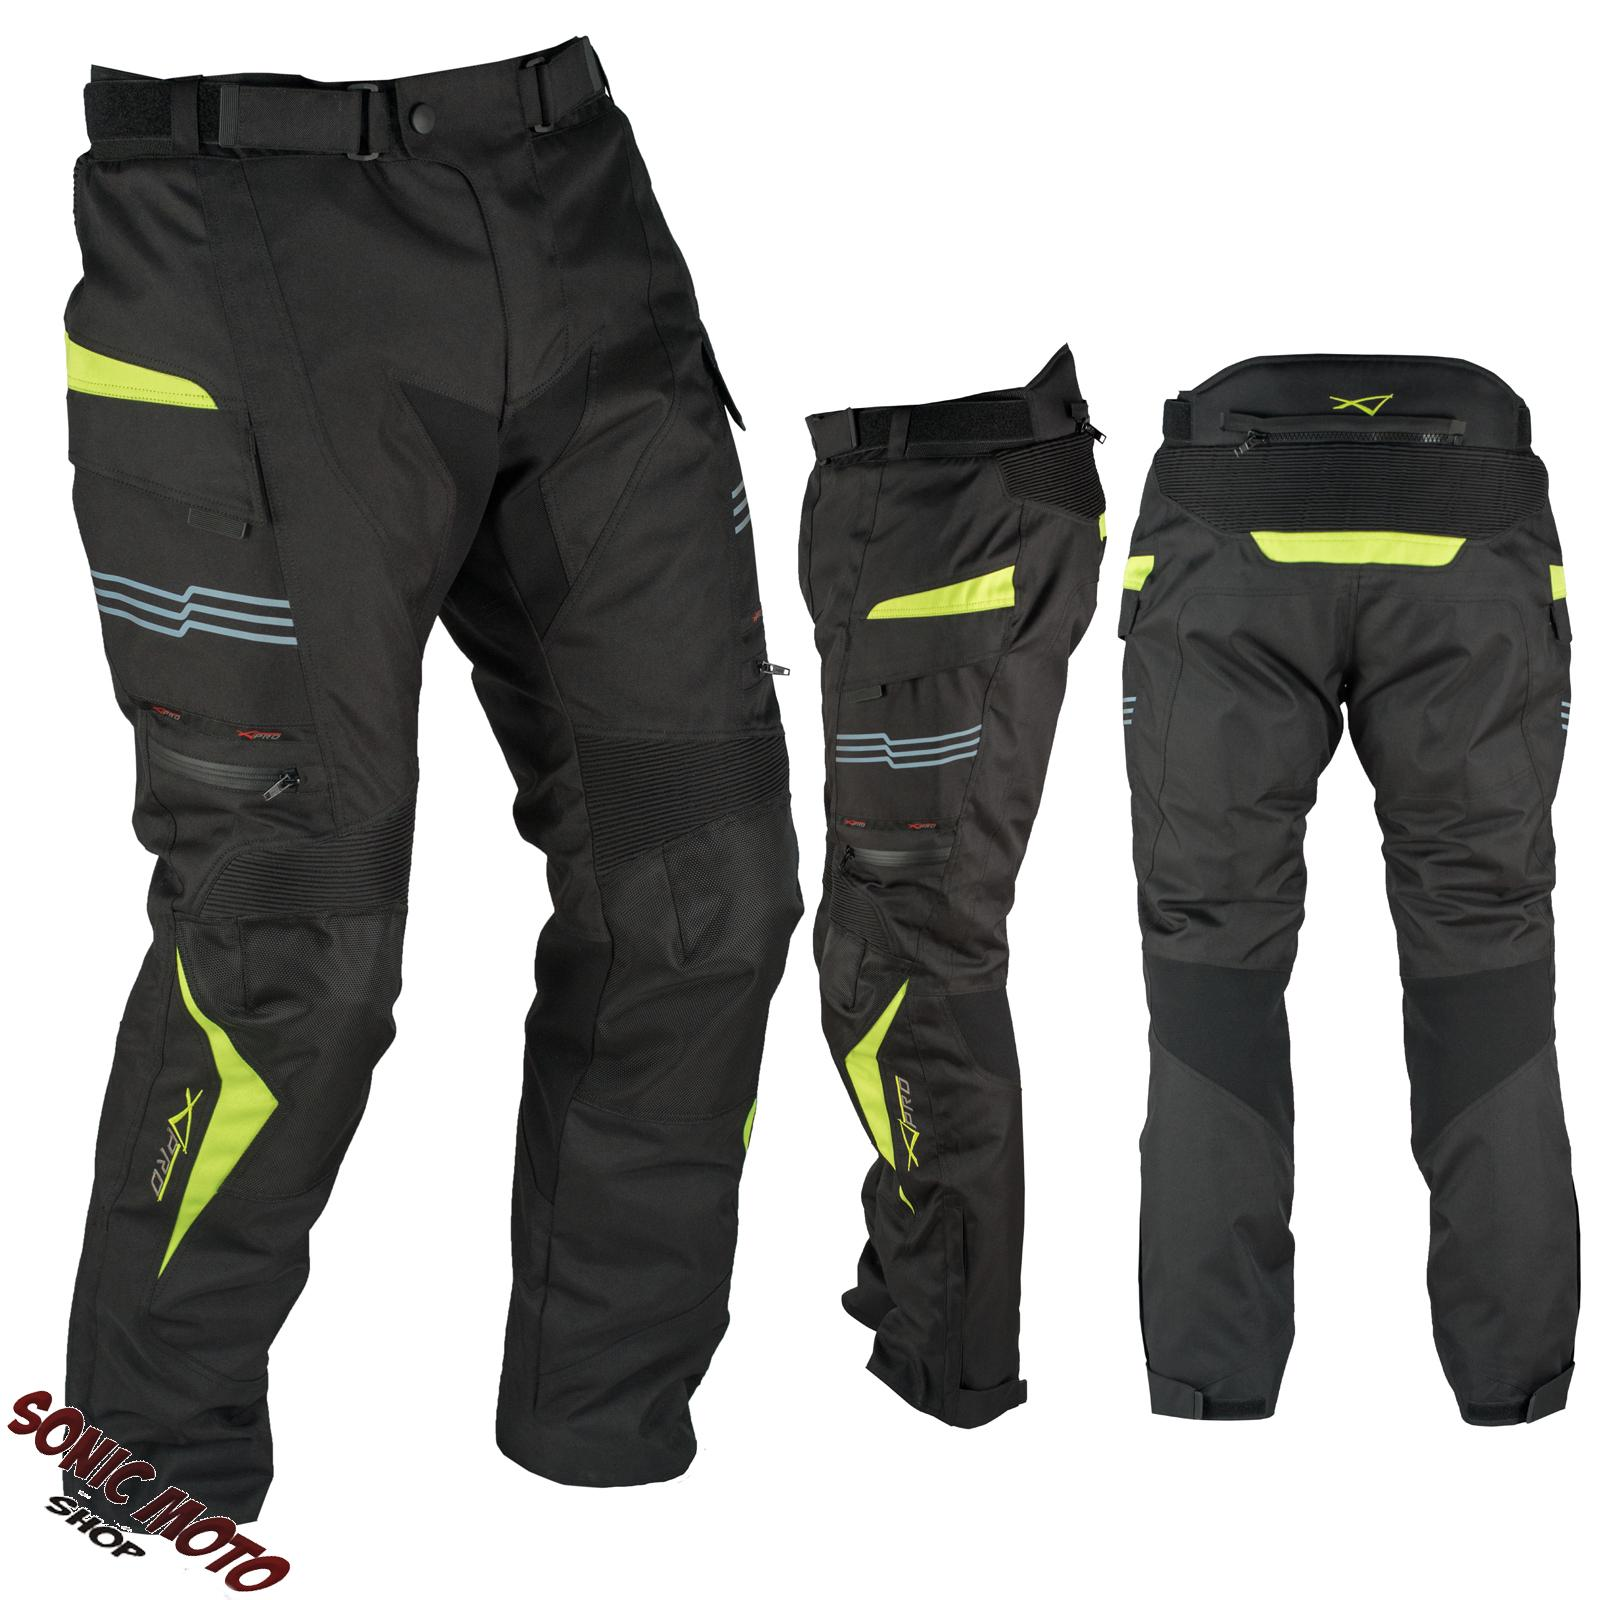 Motorcycle-Trousers-Waterproof-Motorbike-Textile-Thermal-Fluo-Size-34